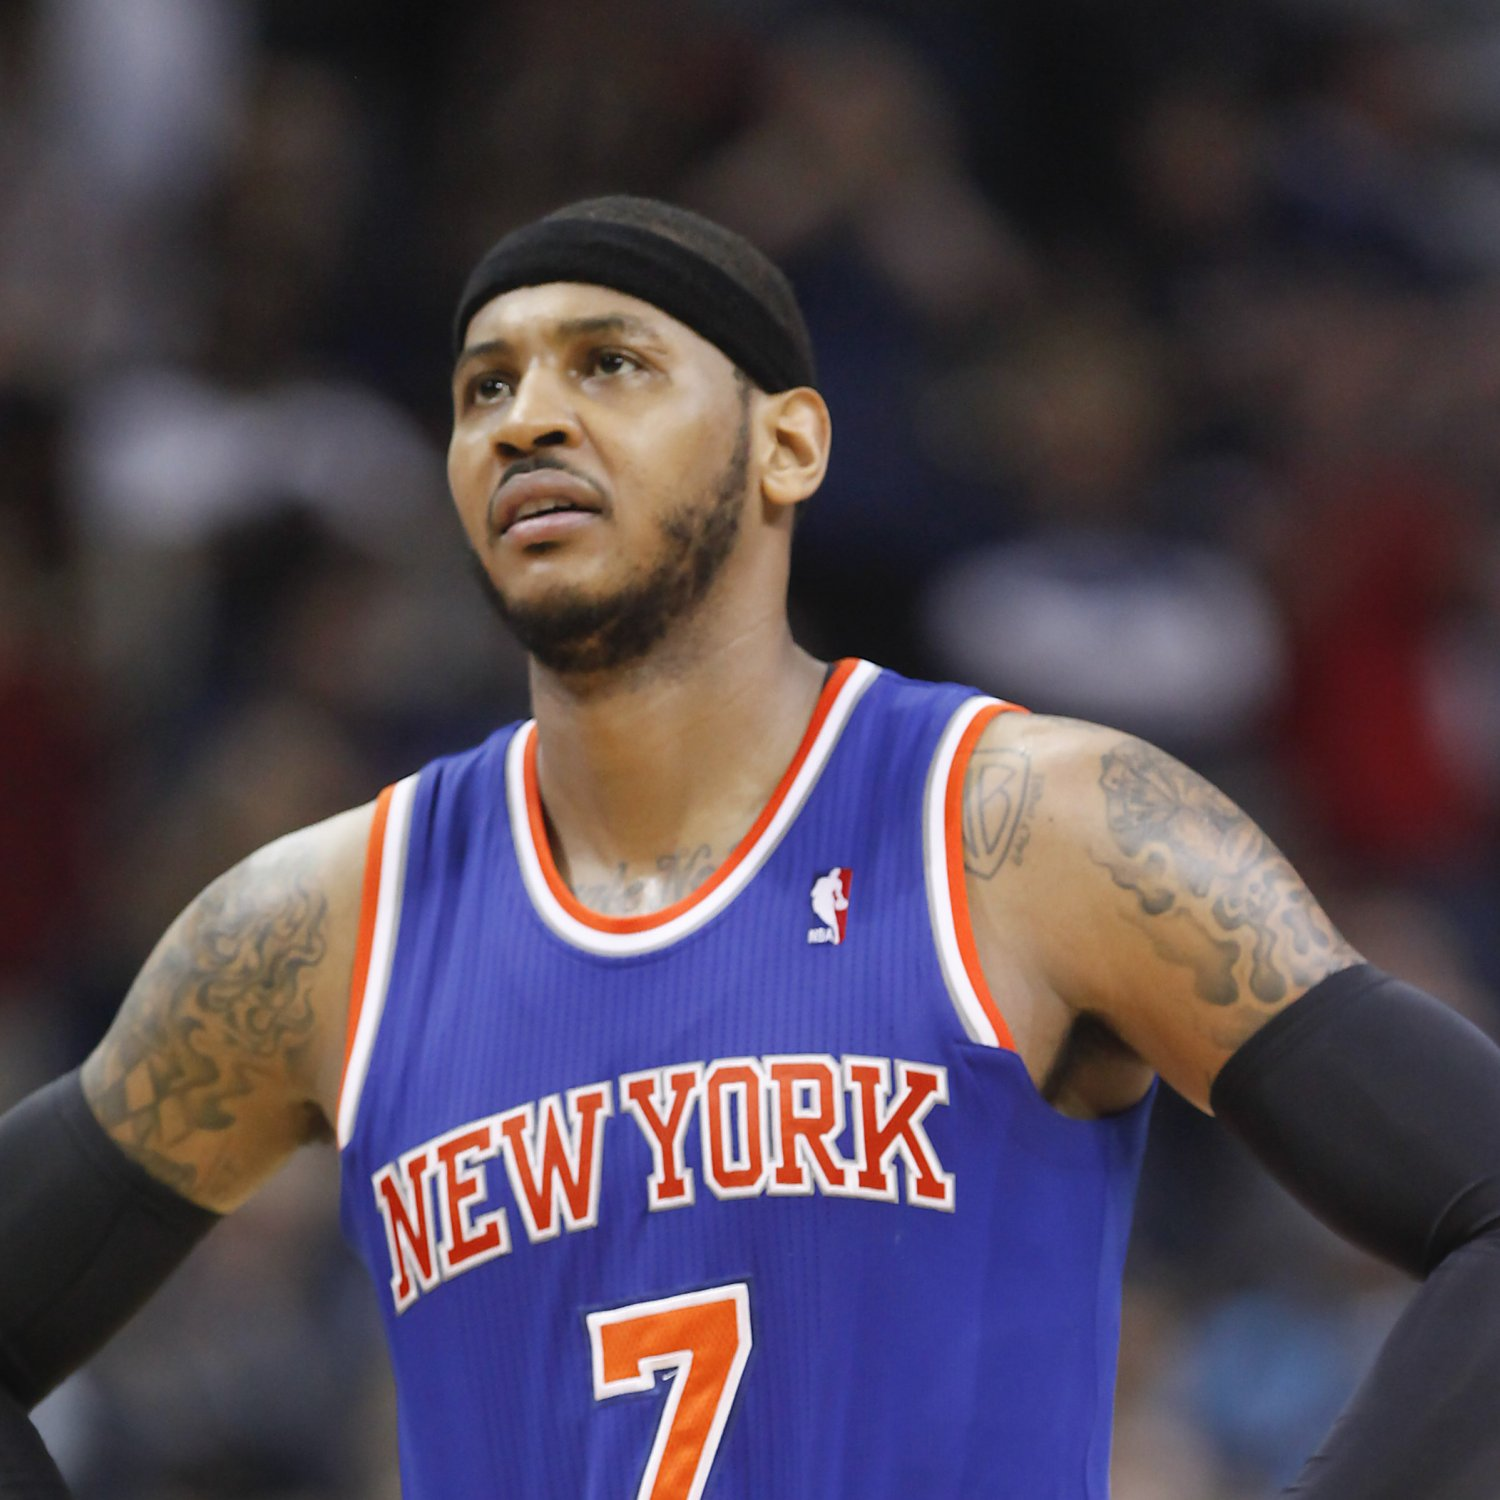 Nba Rumors Latest Buzz Surrounding Top Targets In League ... - photo#41